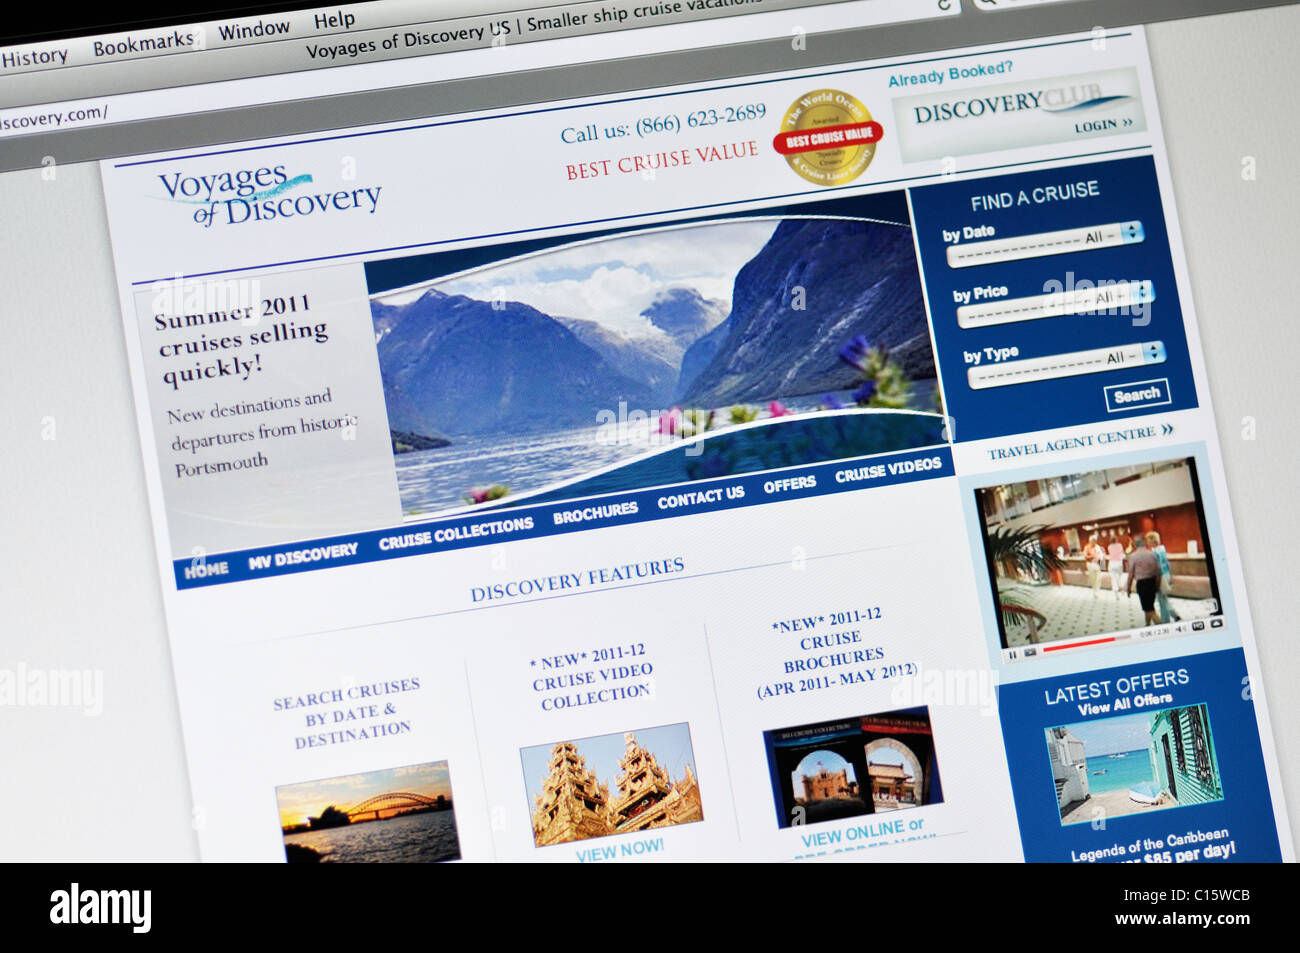 Voyages of Discovery cruises website - Stock Image